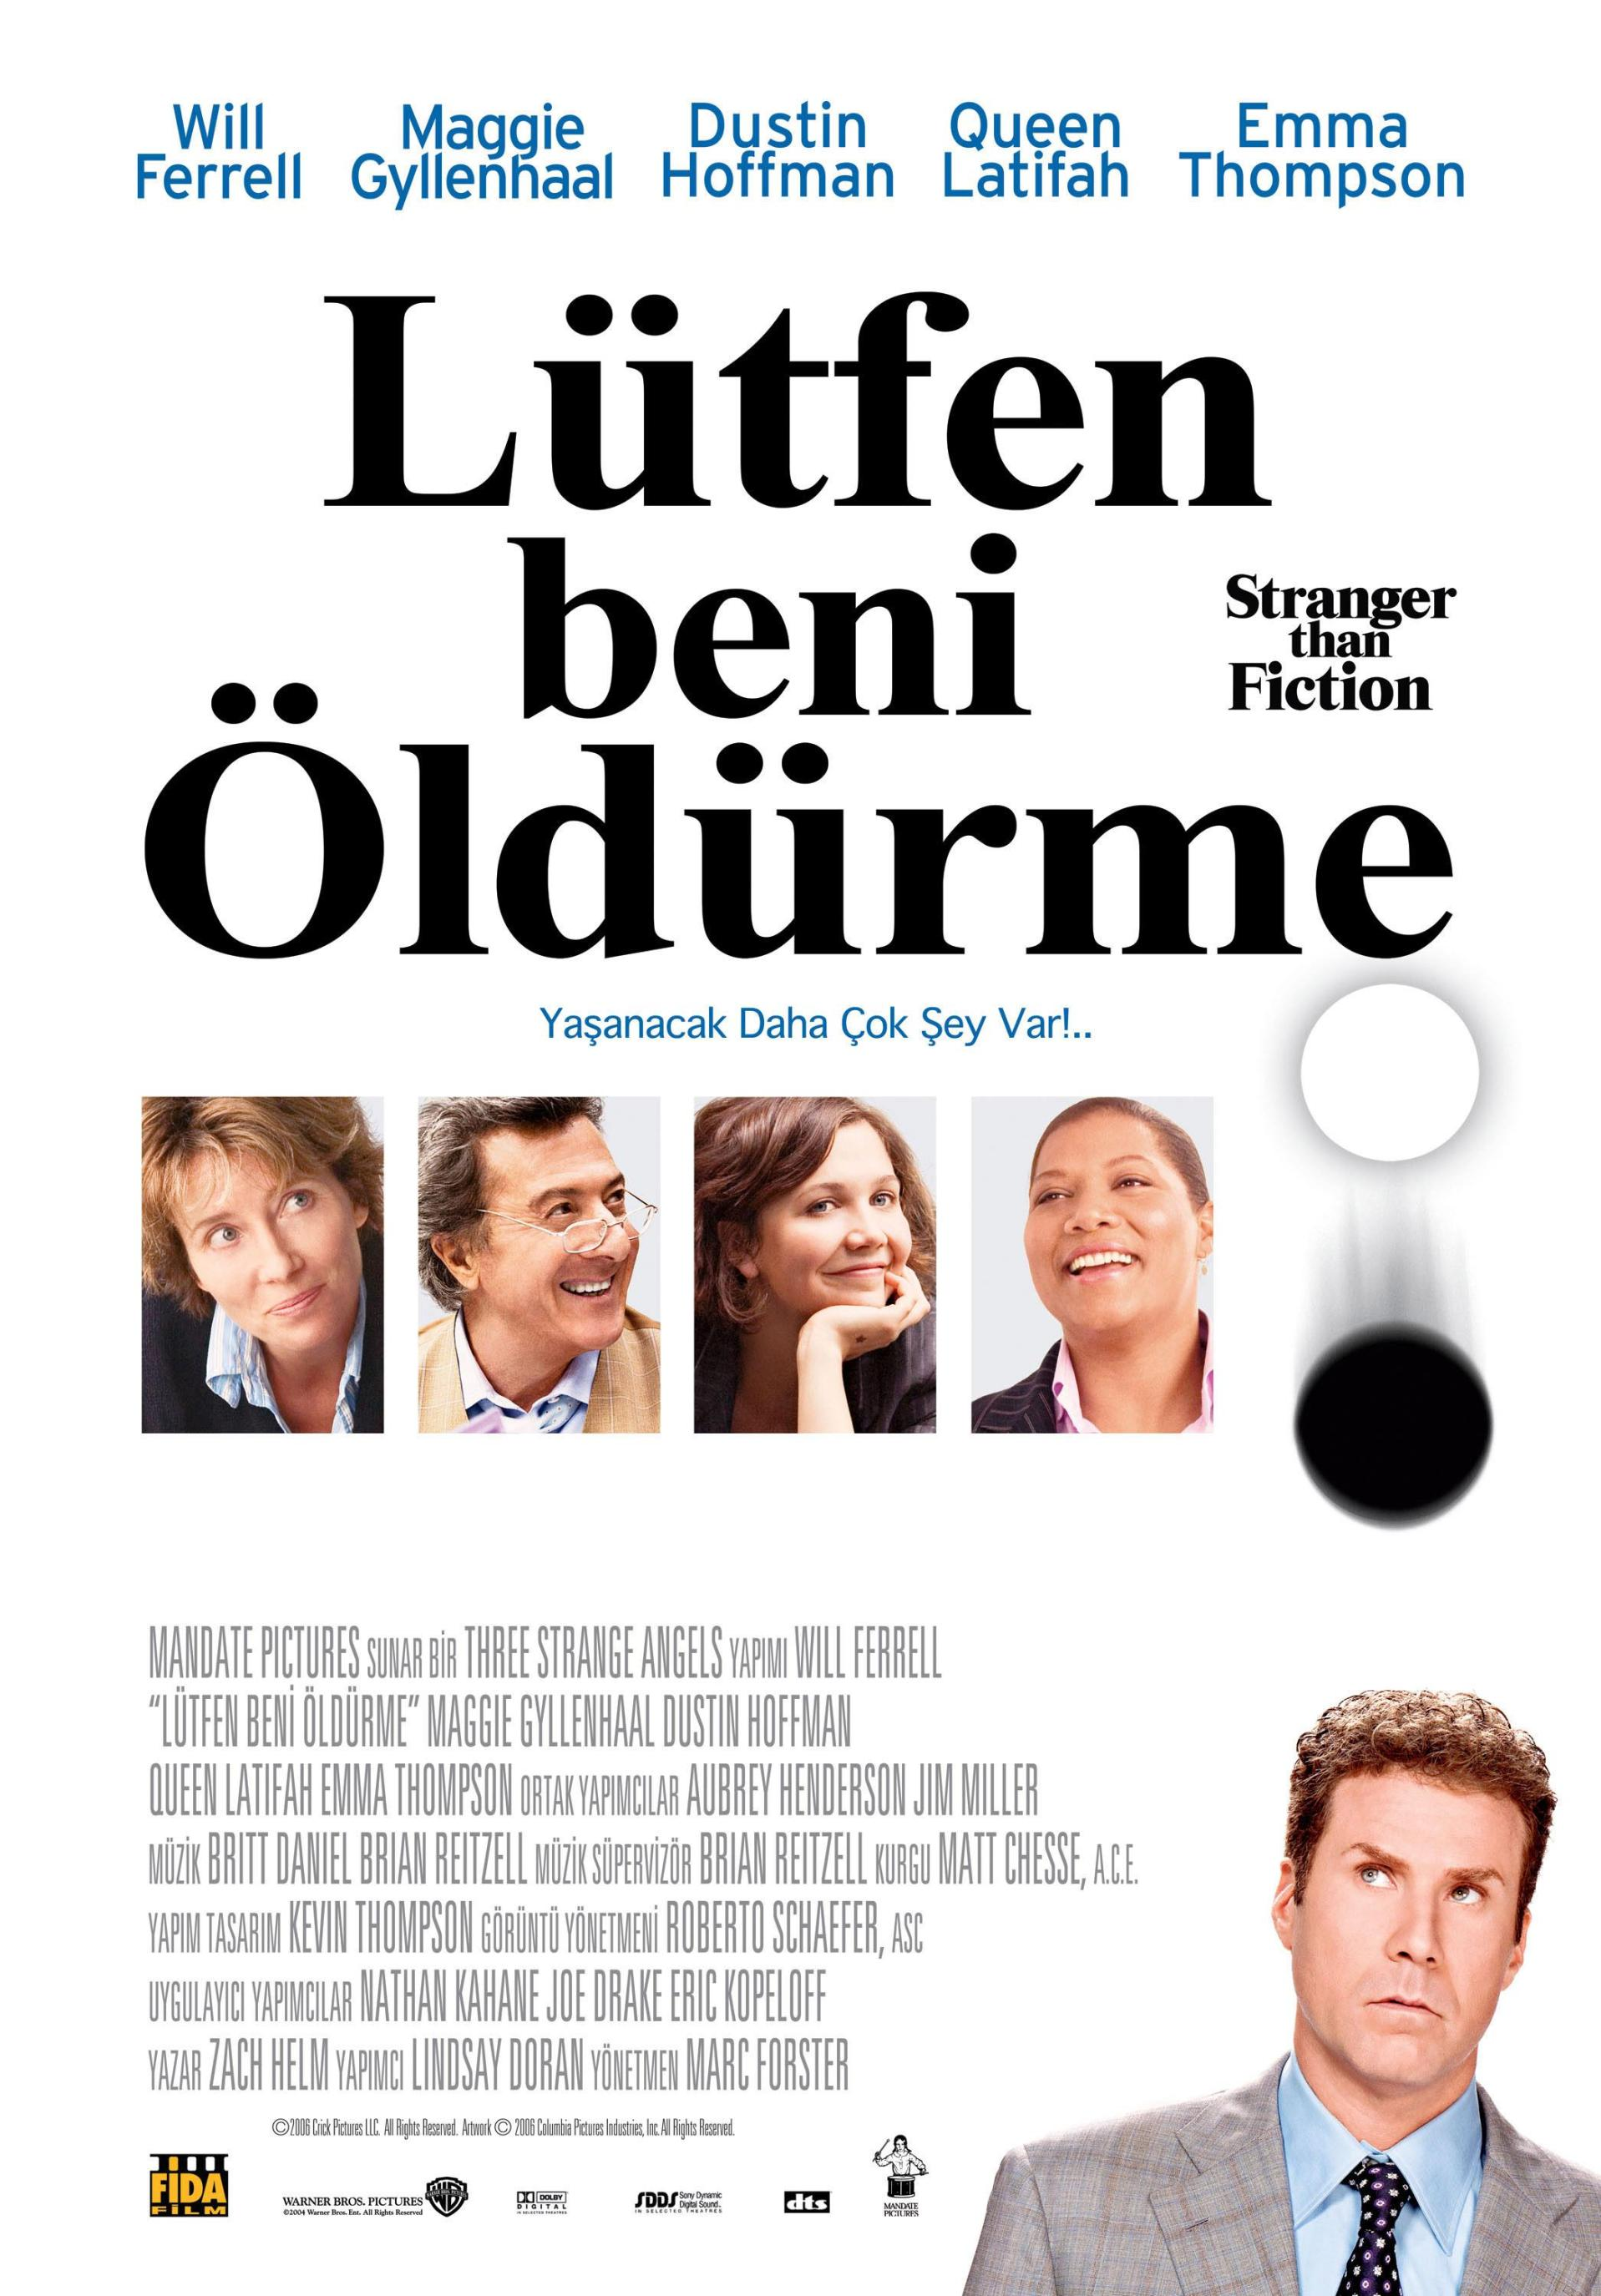 essays on the movie stranger than fiction The most important scene in your favorite movie: stranger than fiction, opening scene the scene i have chosen as my personal favorite is the opening scene of the.